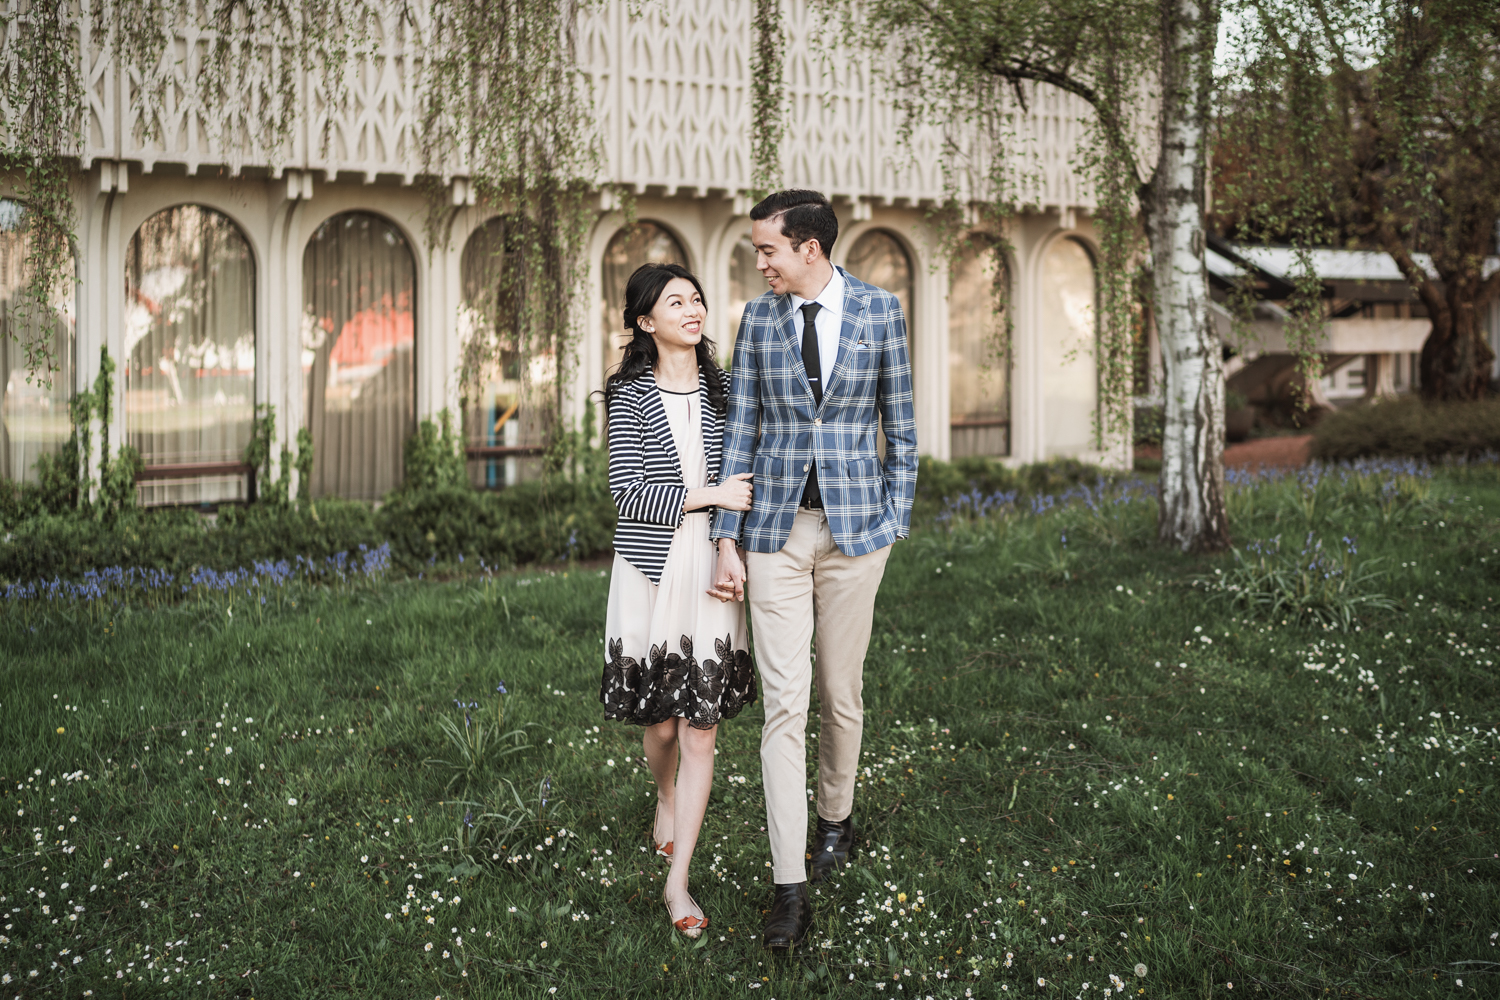 museum of vancouver engagement photography during spring cherry blossom season